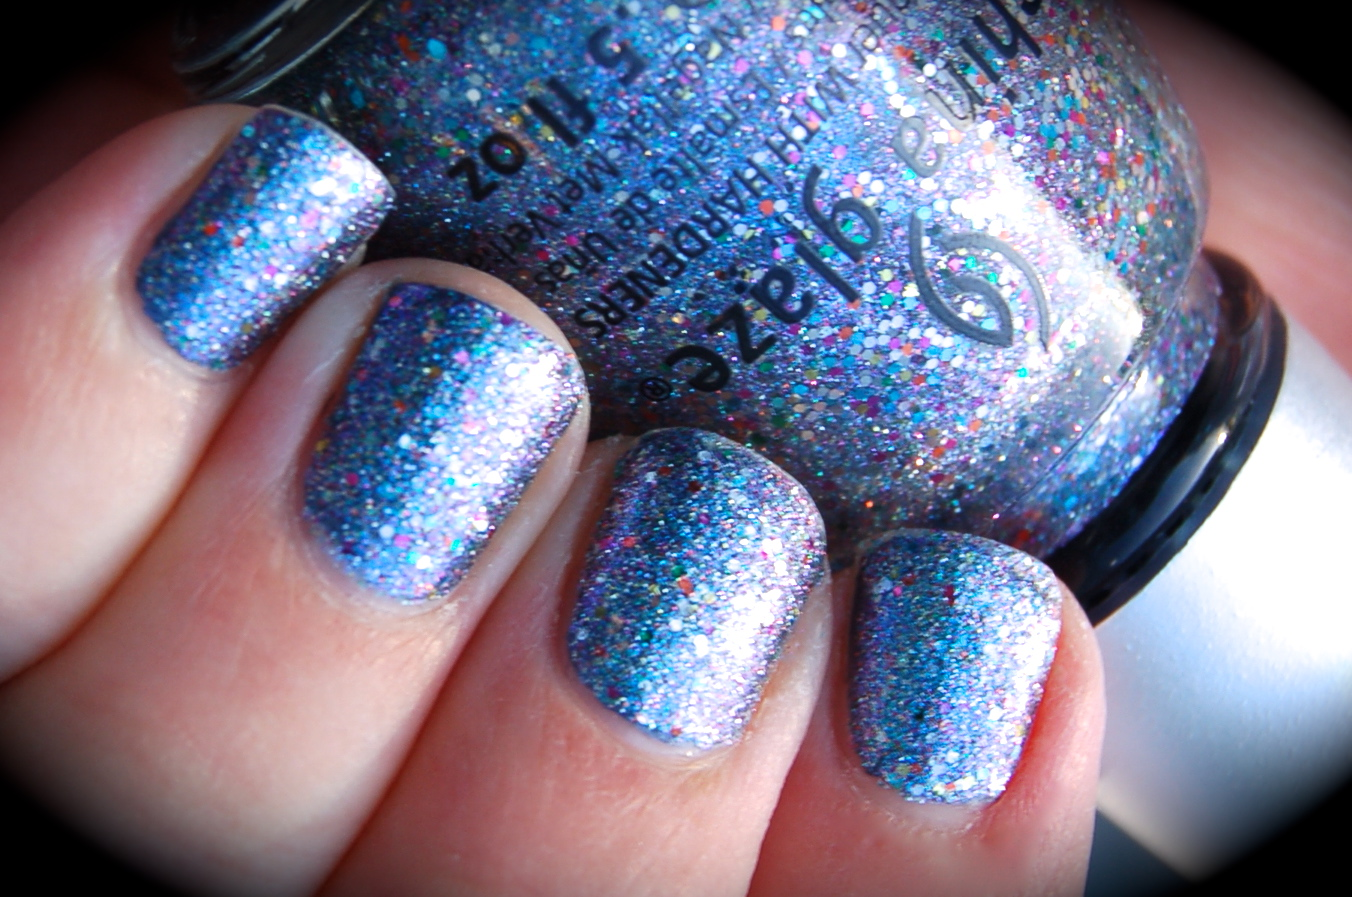 Swatch of China Glaze Liquid Crystal, Prismatic Chroma Glitters collection, bilder, nail polish, blogg nagellack